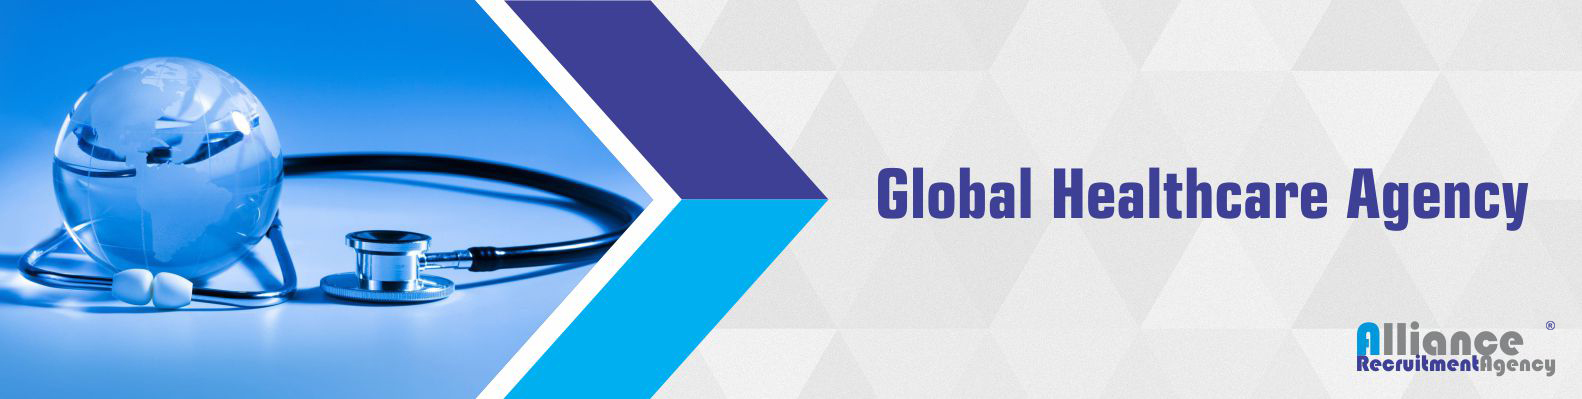 Global Healthcare Agency